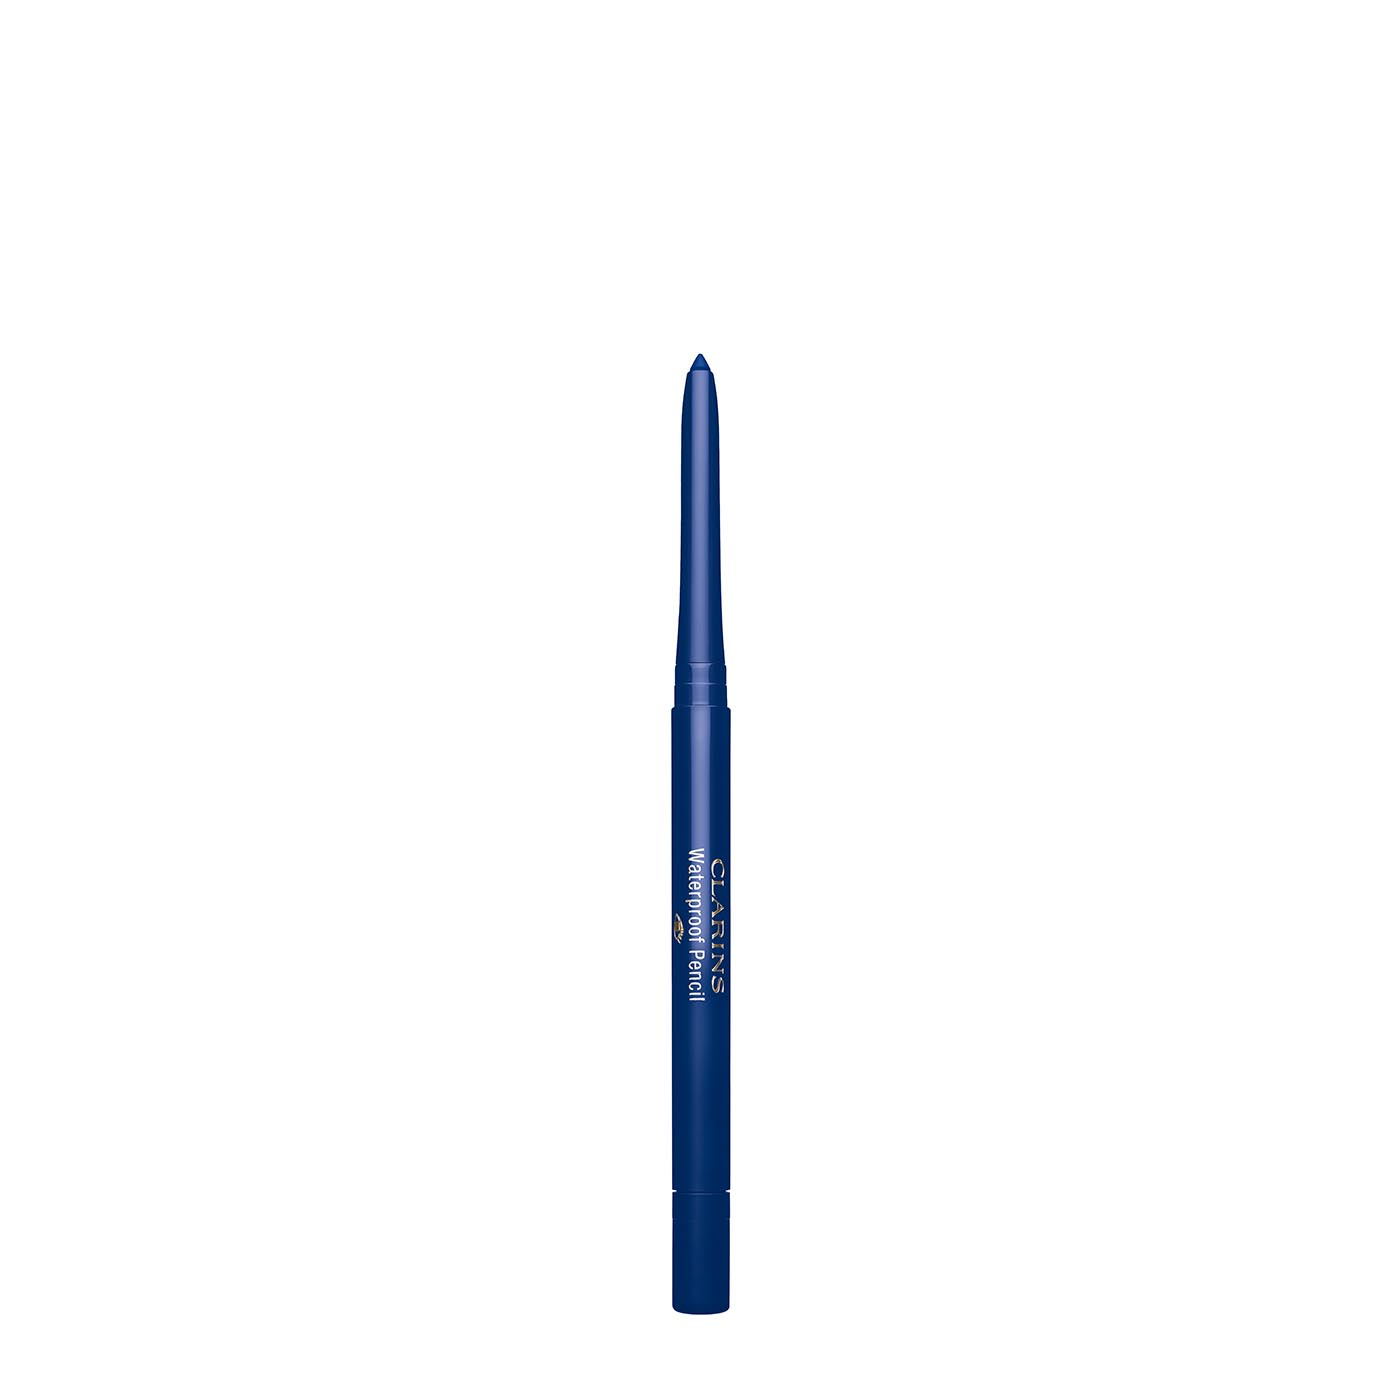 Clarins Waterproof Eye Pencil